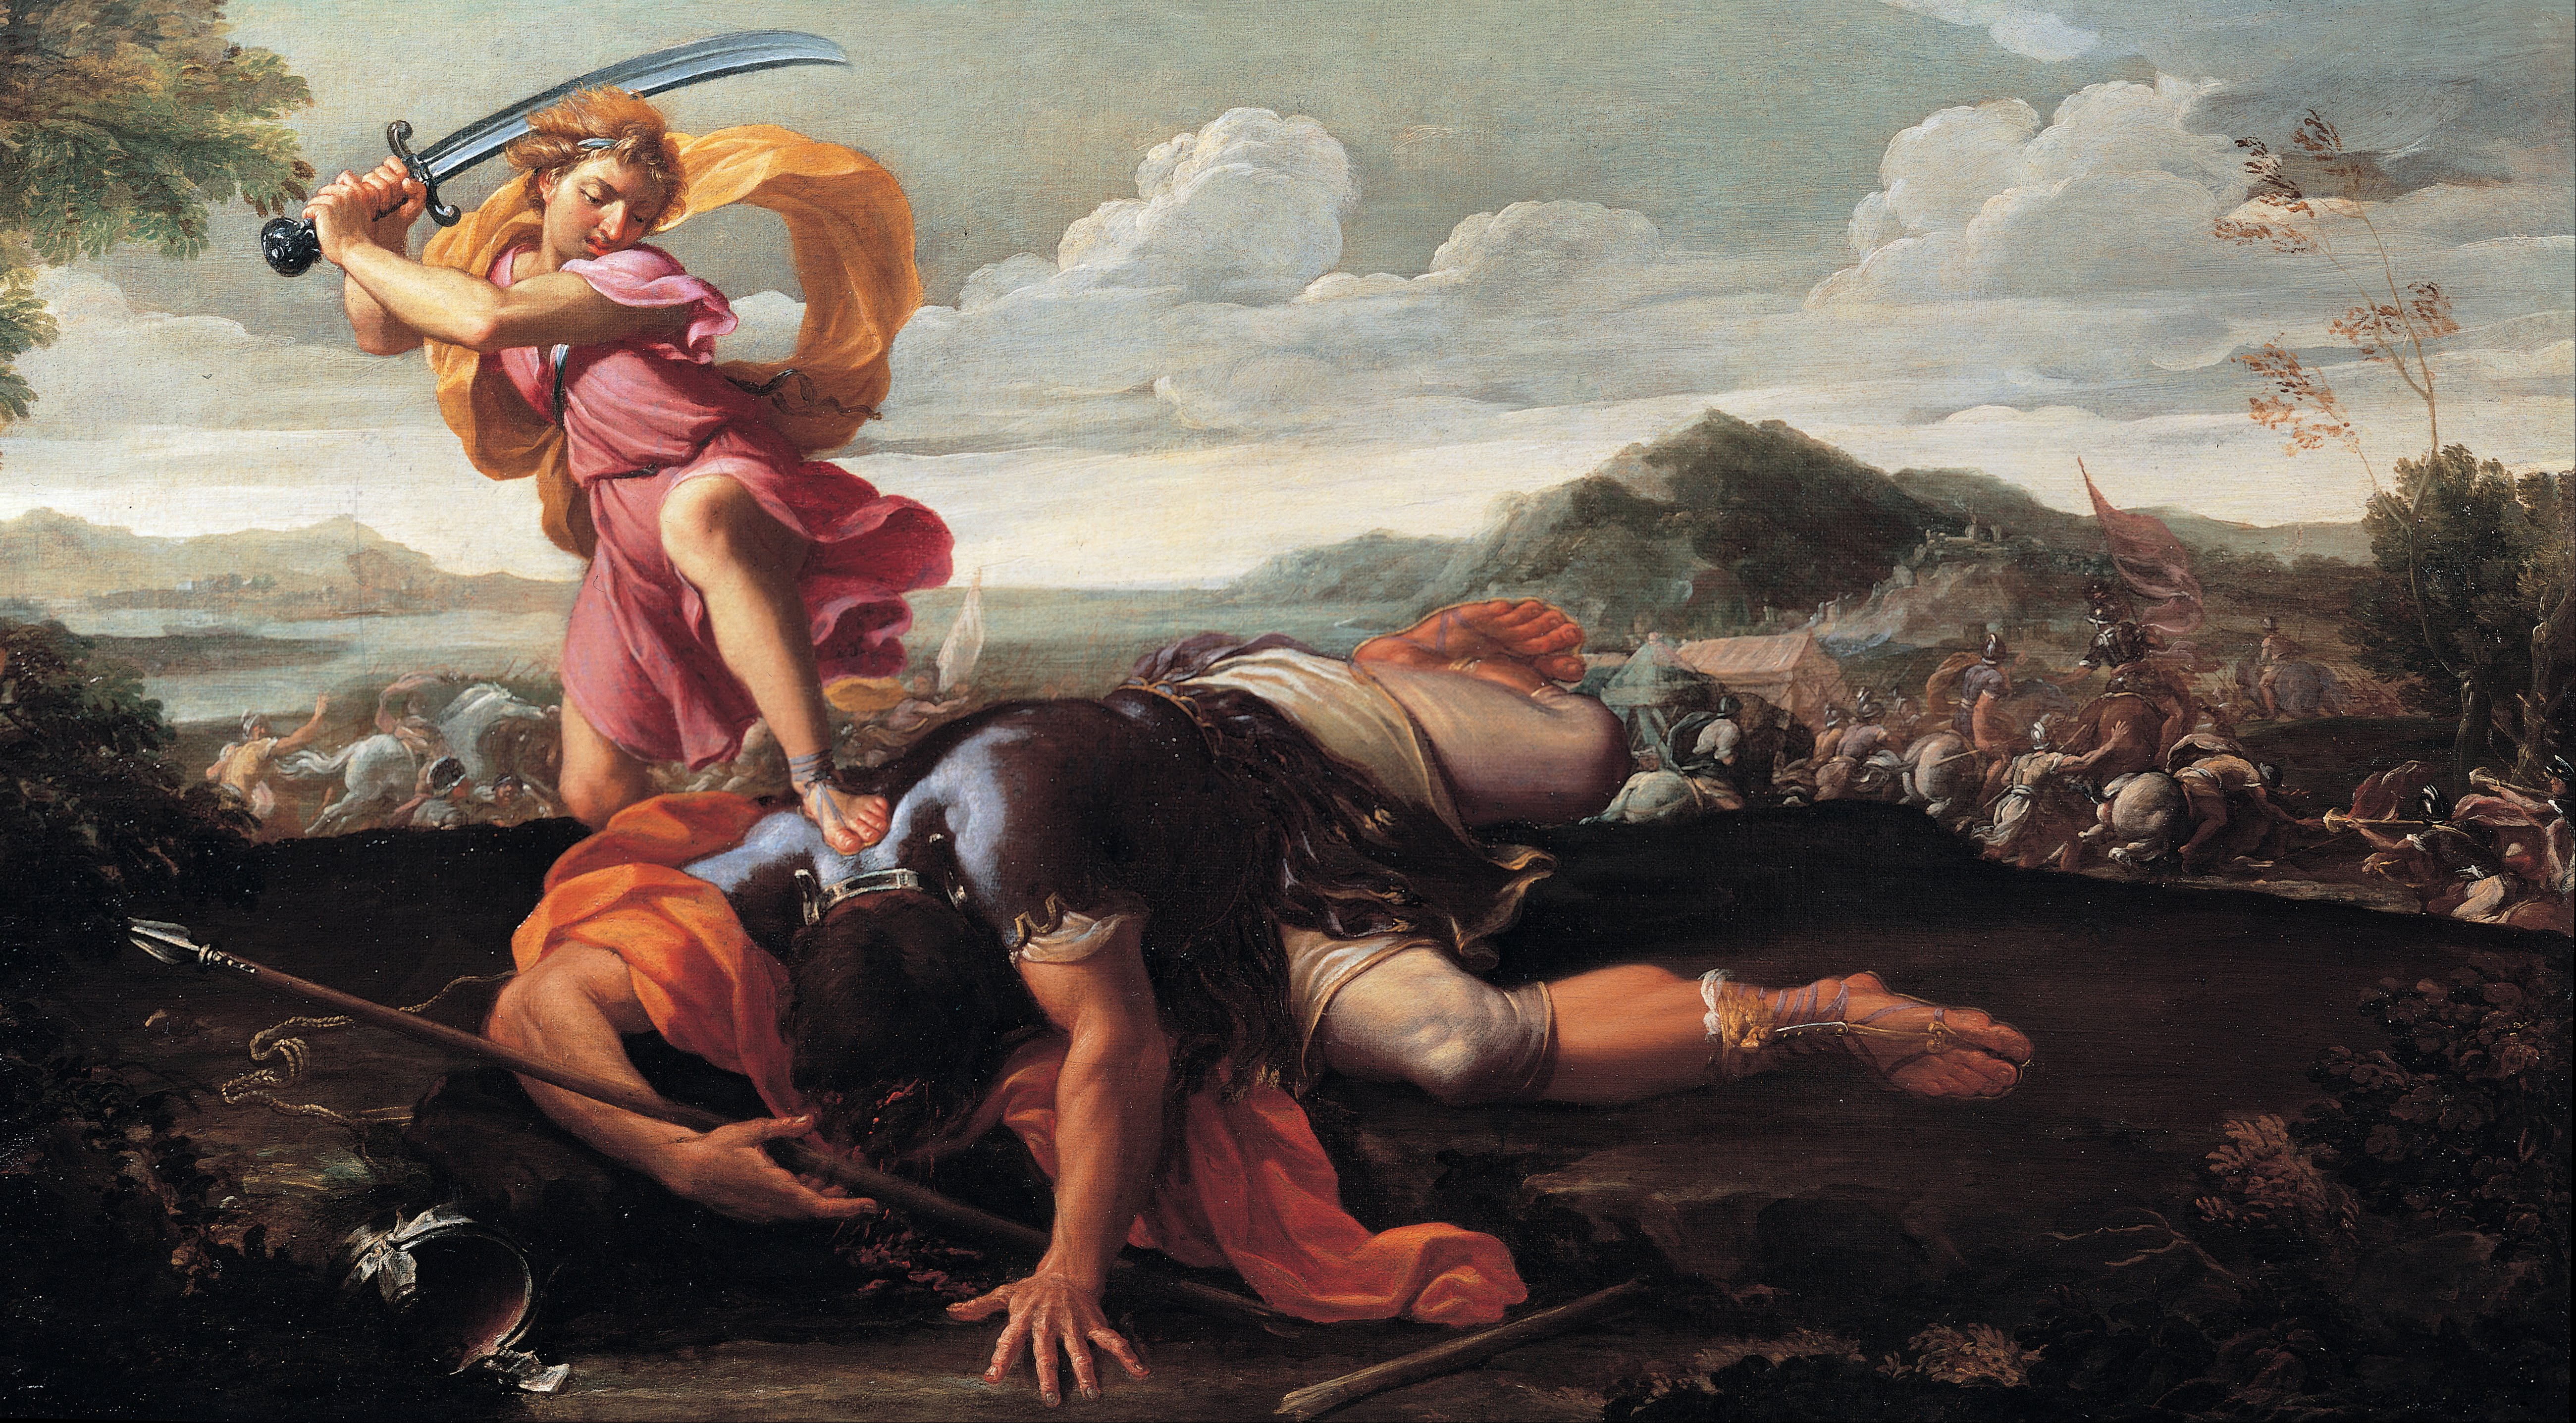 Guillaime_Courtois_-_David_and_Goliath_-_Google_Art_Project